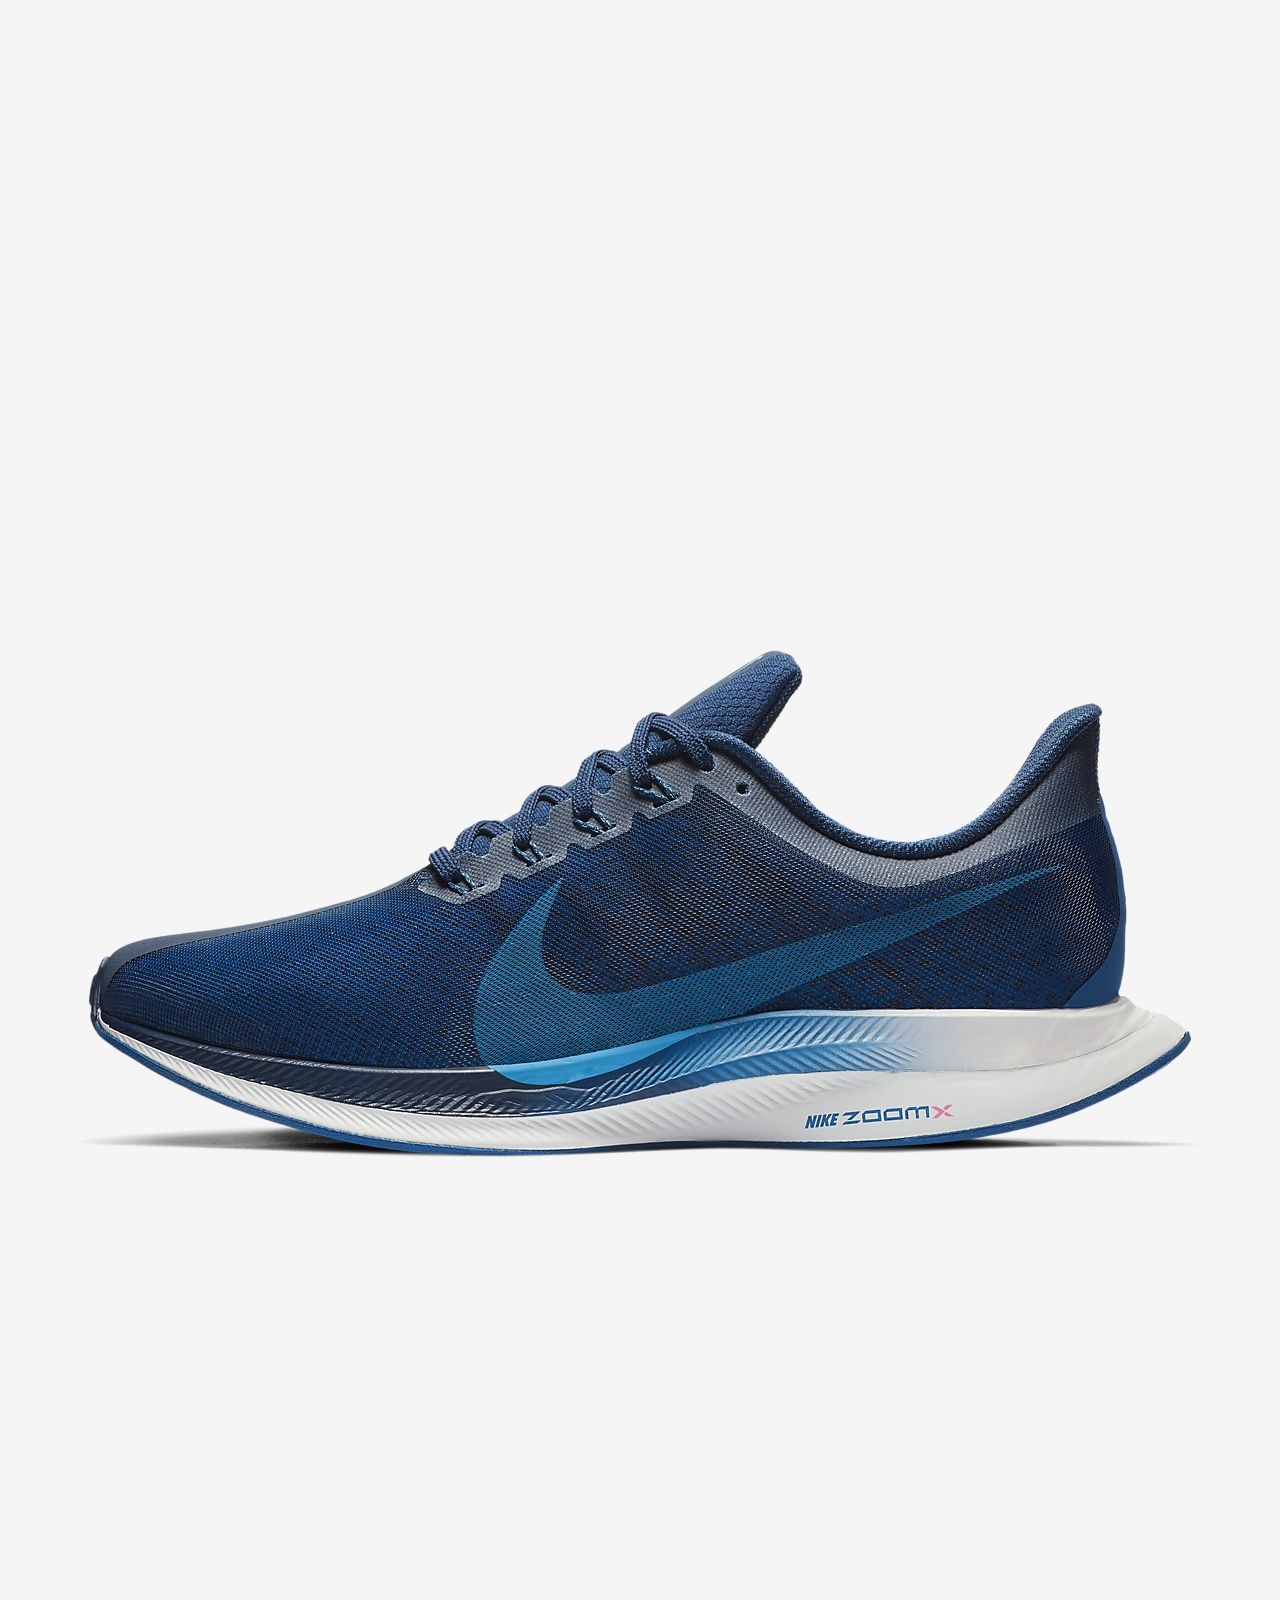 Zapatillas de running Nike ZOOM PEGASUS 35 TURBO